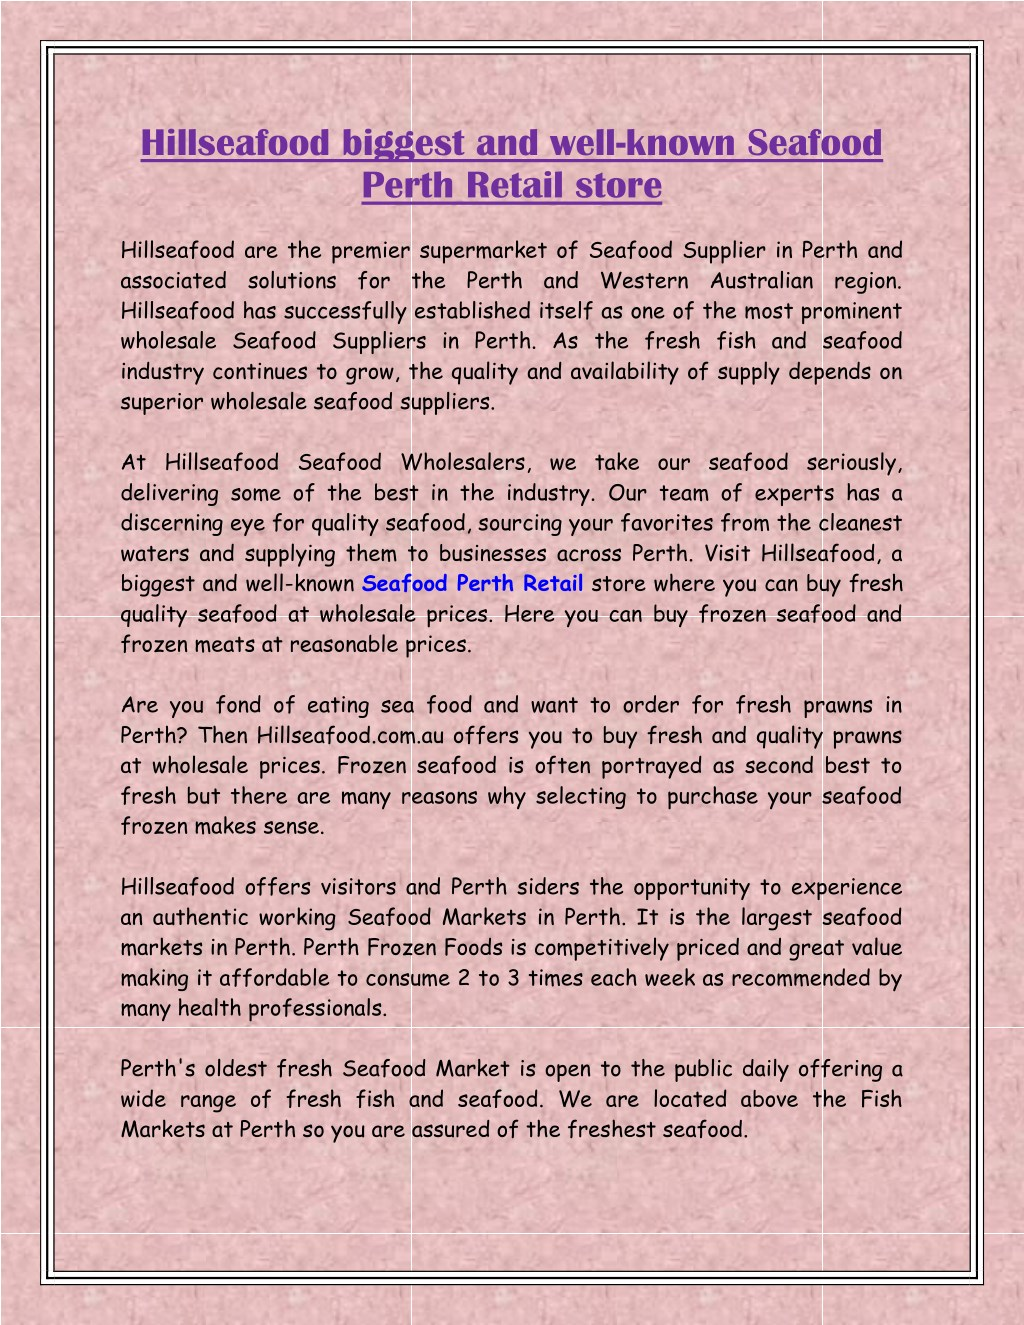 PPT - Hillseafood biggest and well-known Seafood Perth Retail store